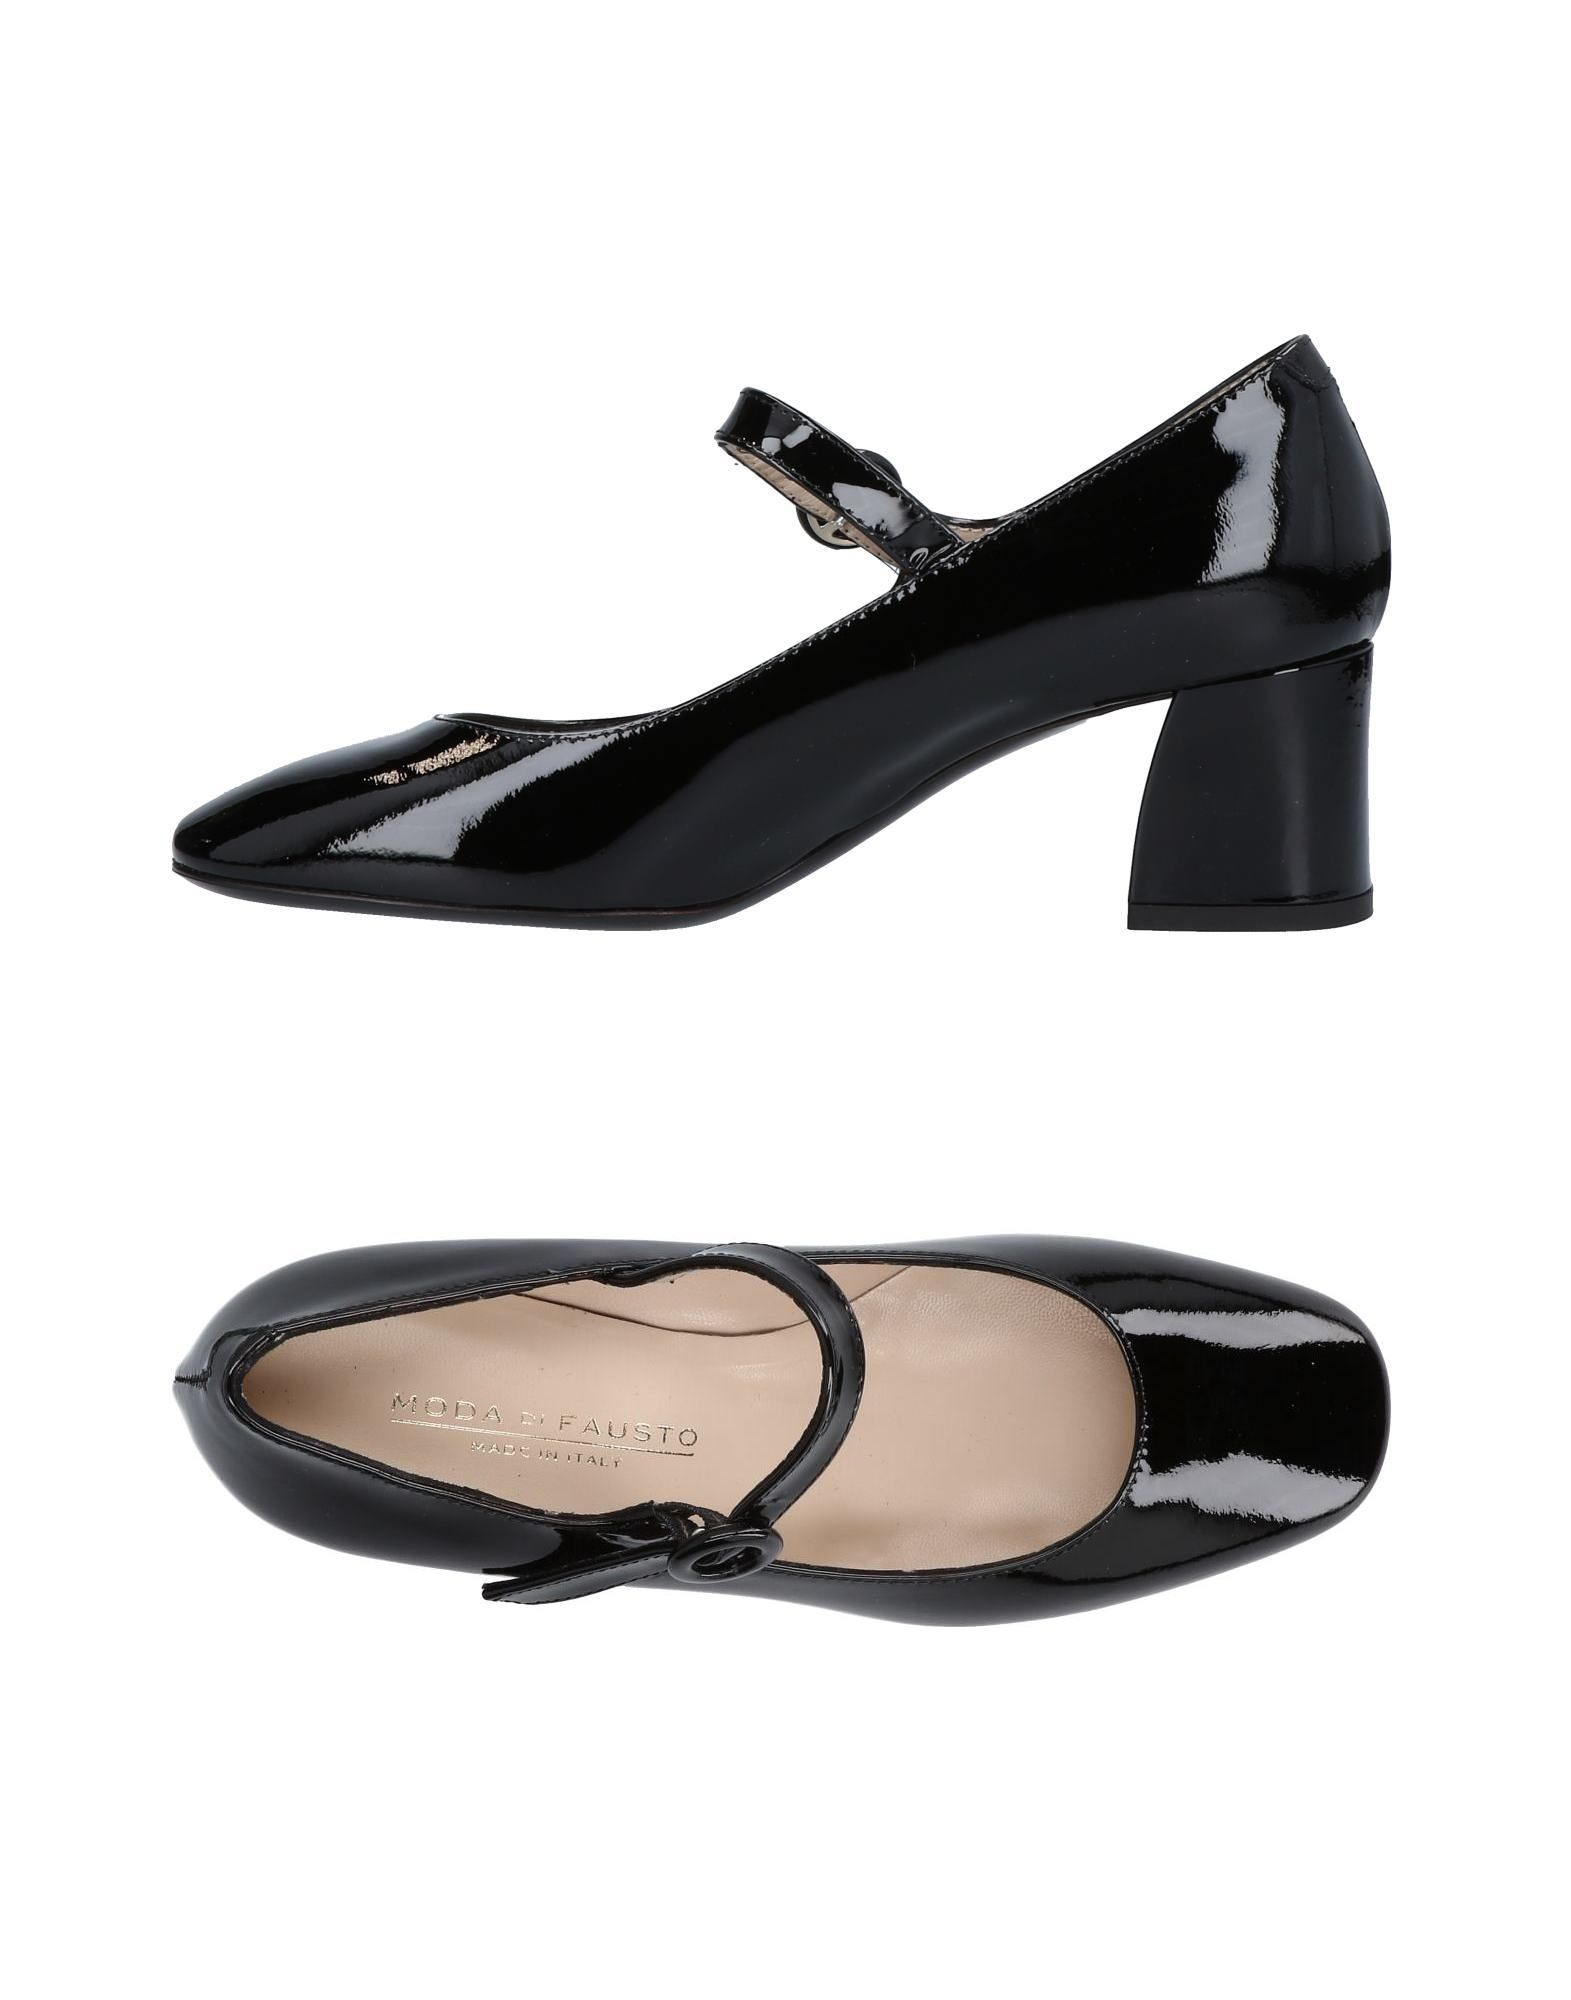 Moda Di Fausto Pump - Pumps Women Moda Di Fausto Pumps - online on  Australia - 11460906VN c16165